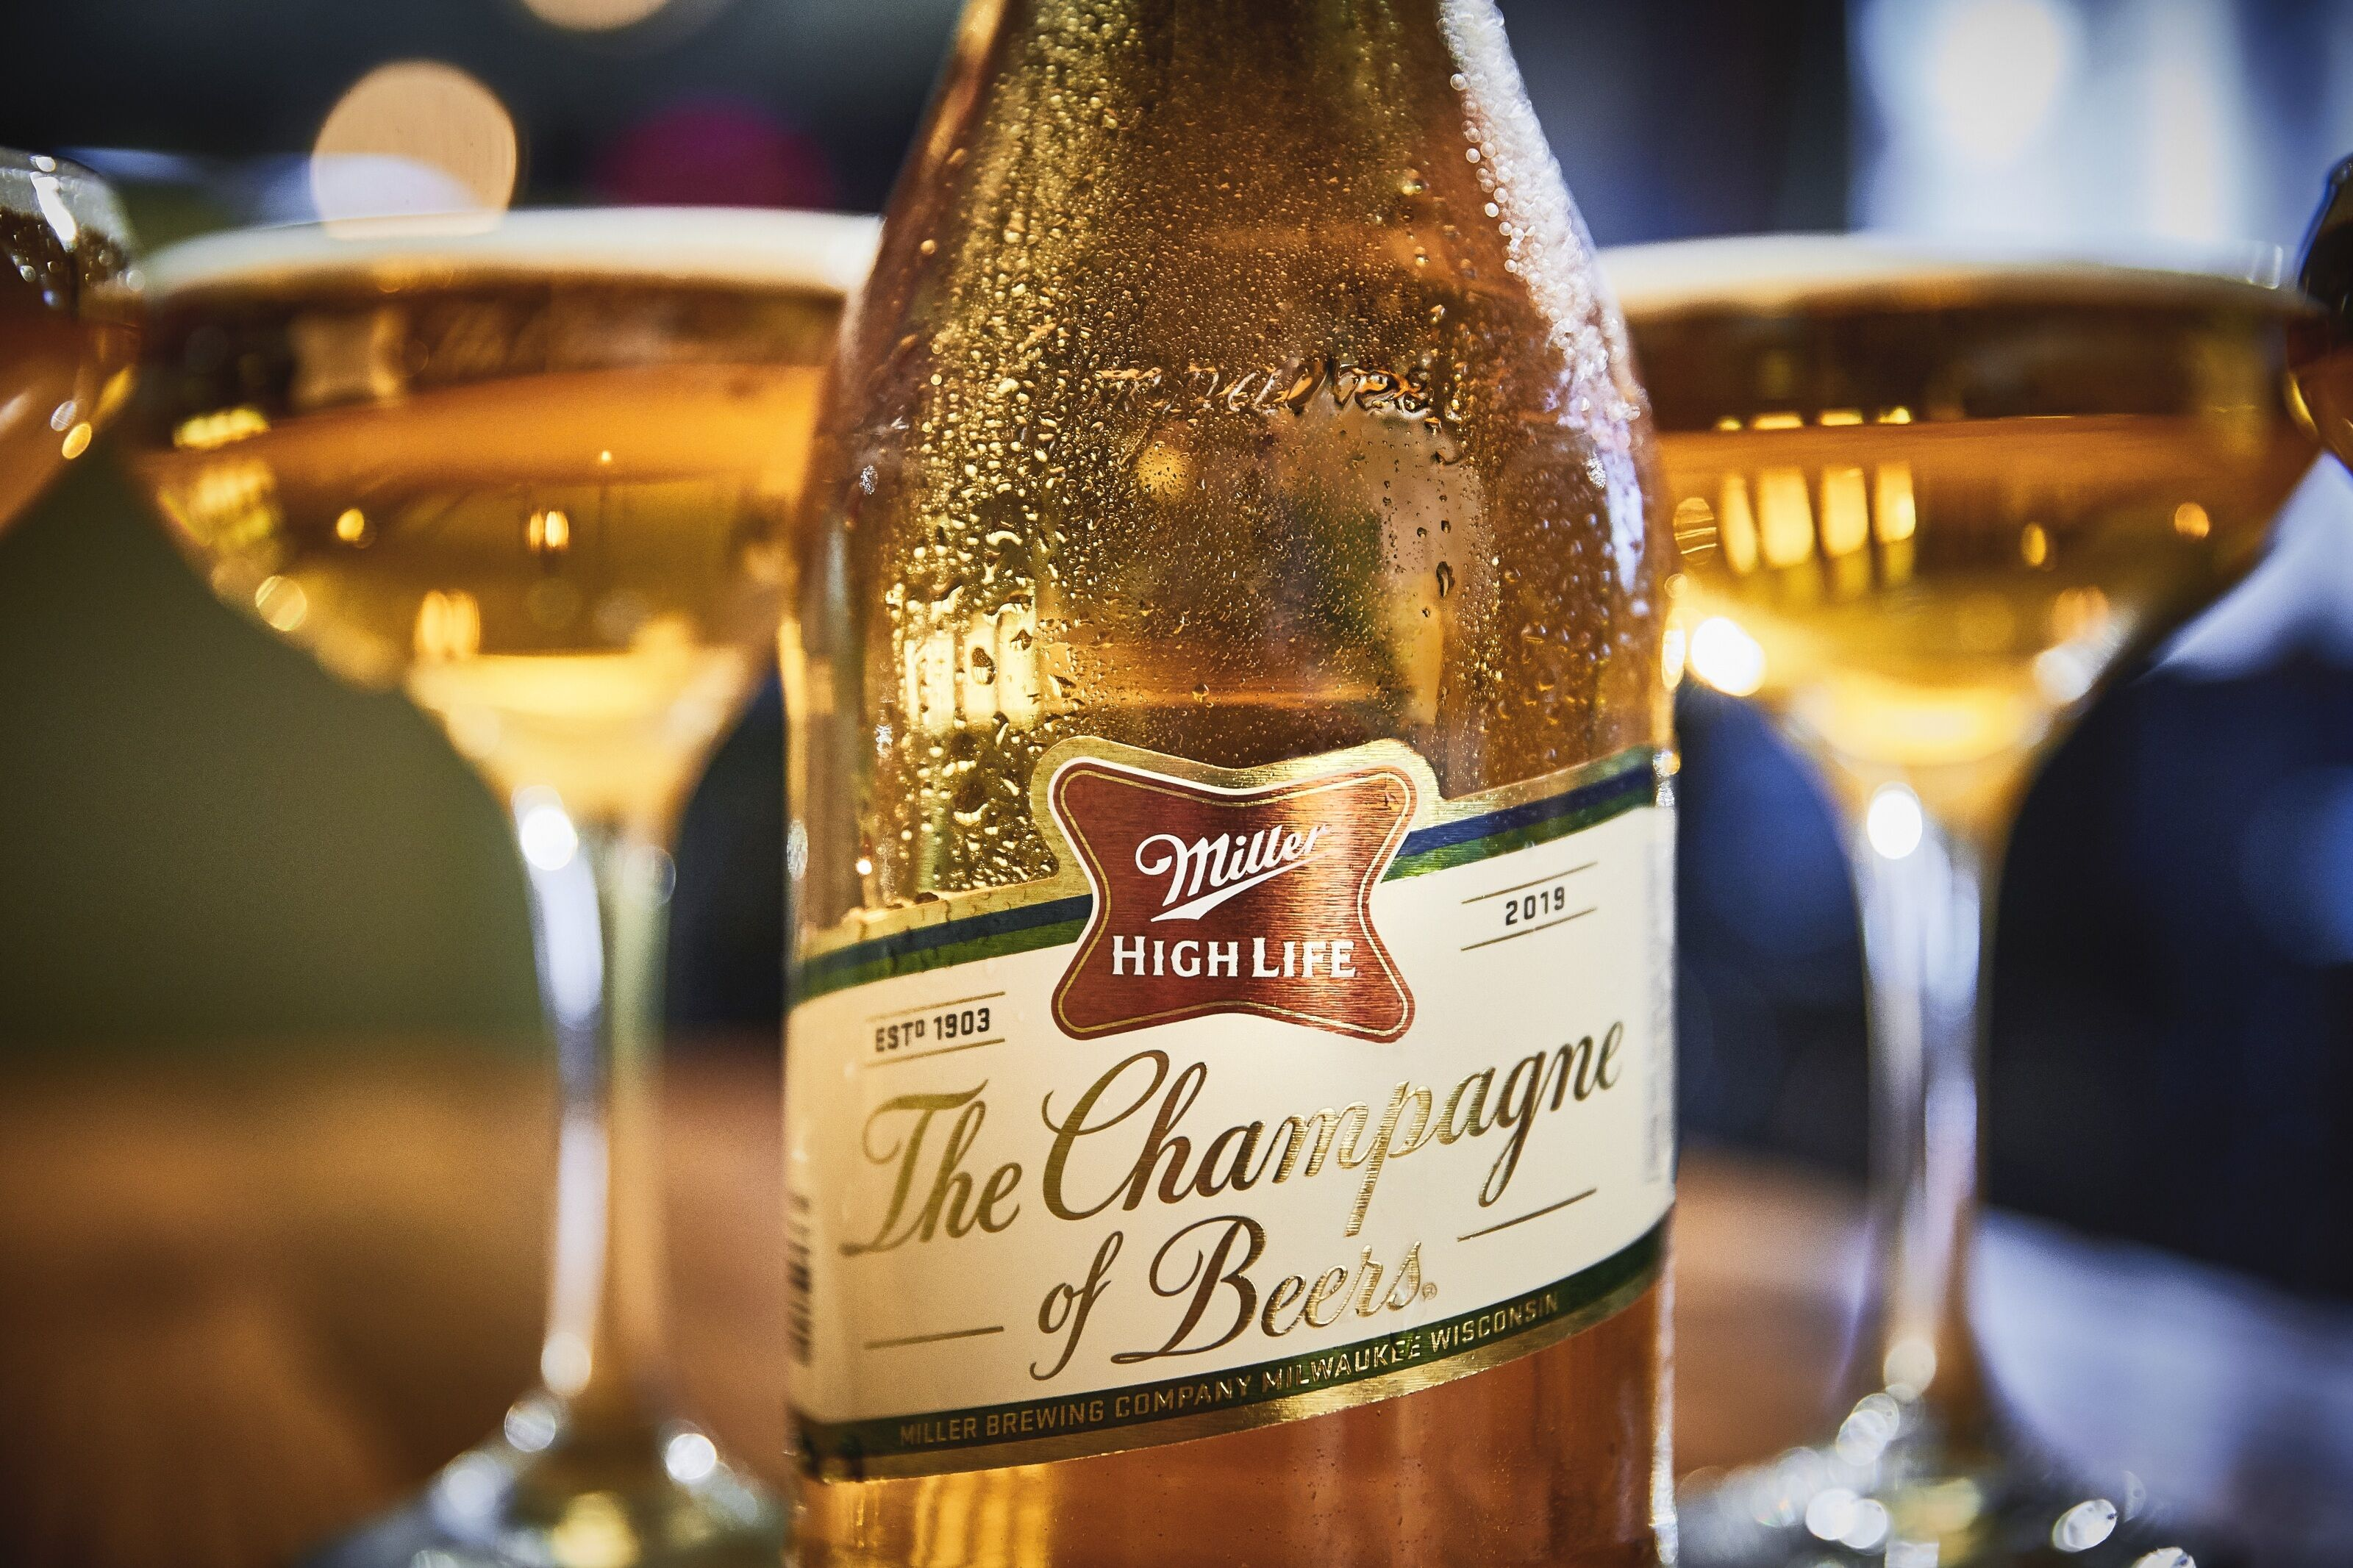 Toast to the high life – Miller High Life Champagne bottles are back